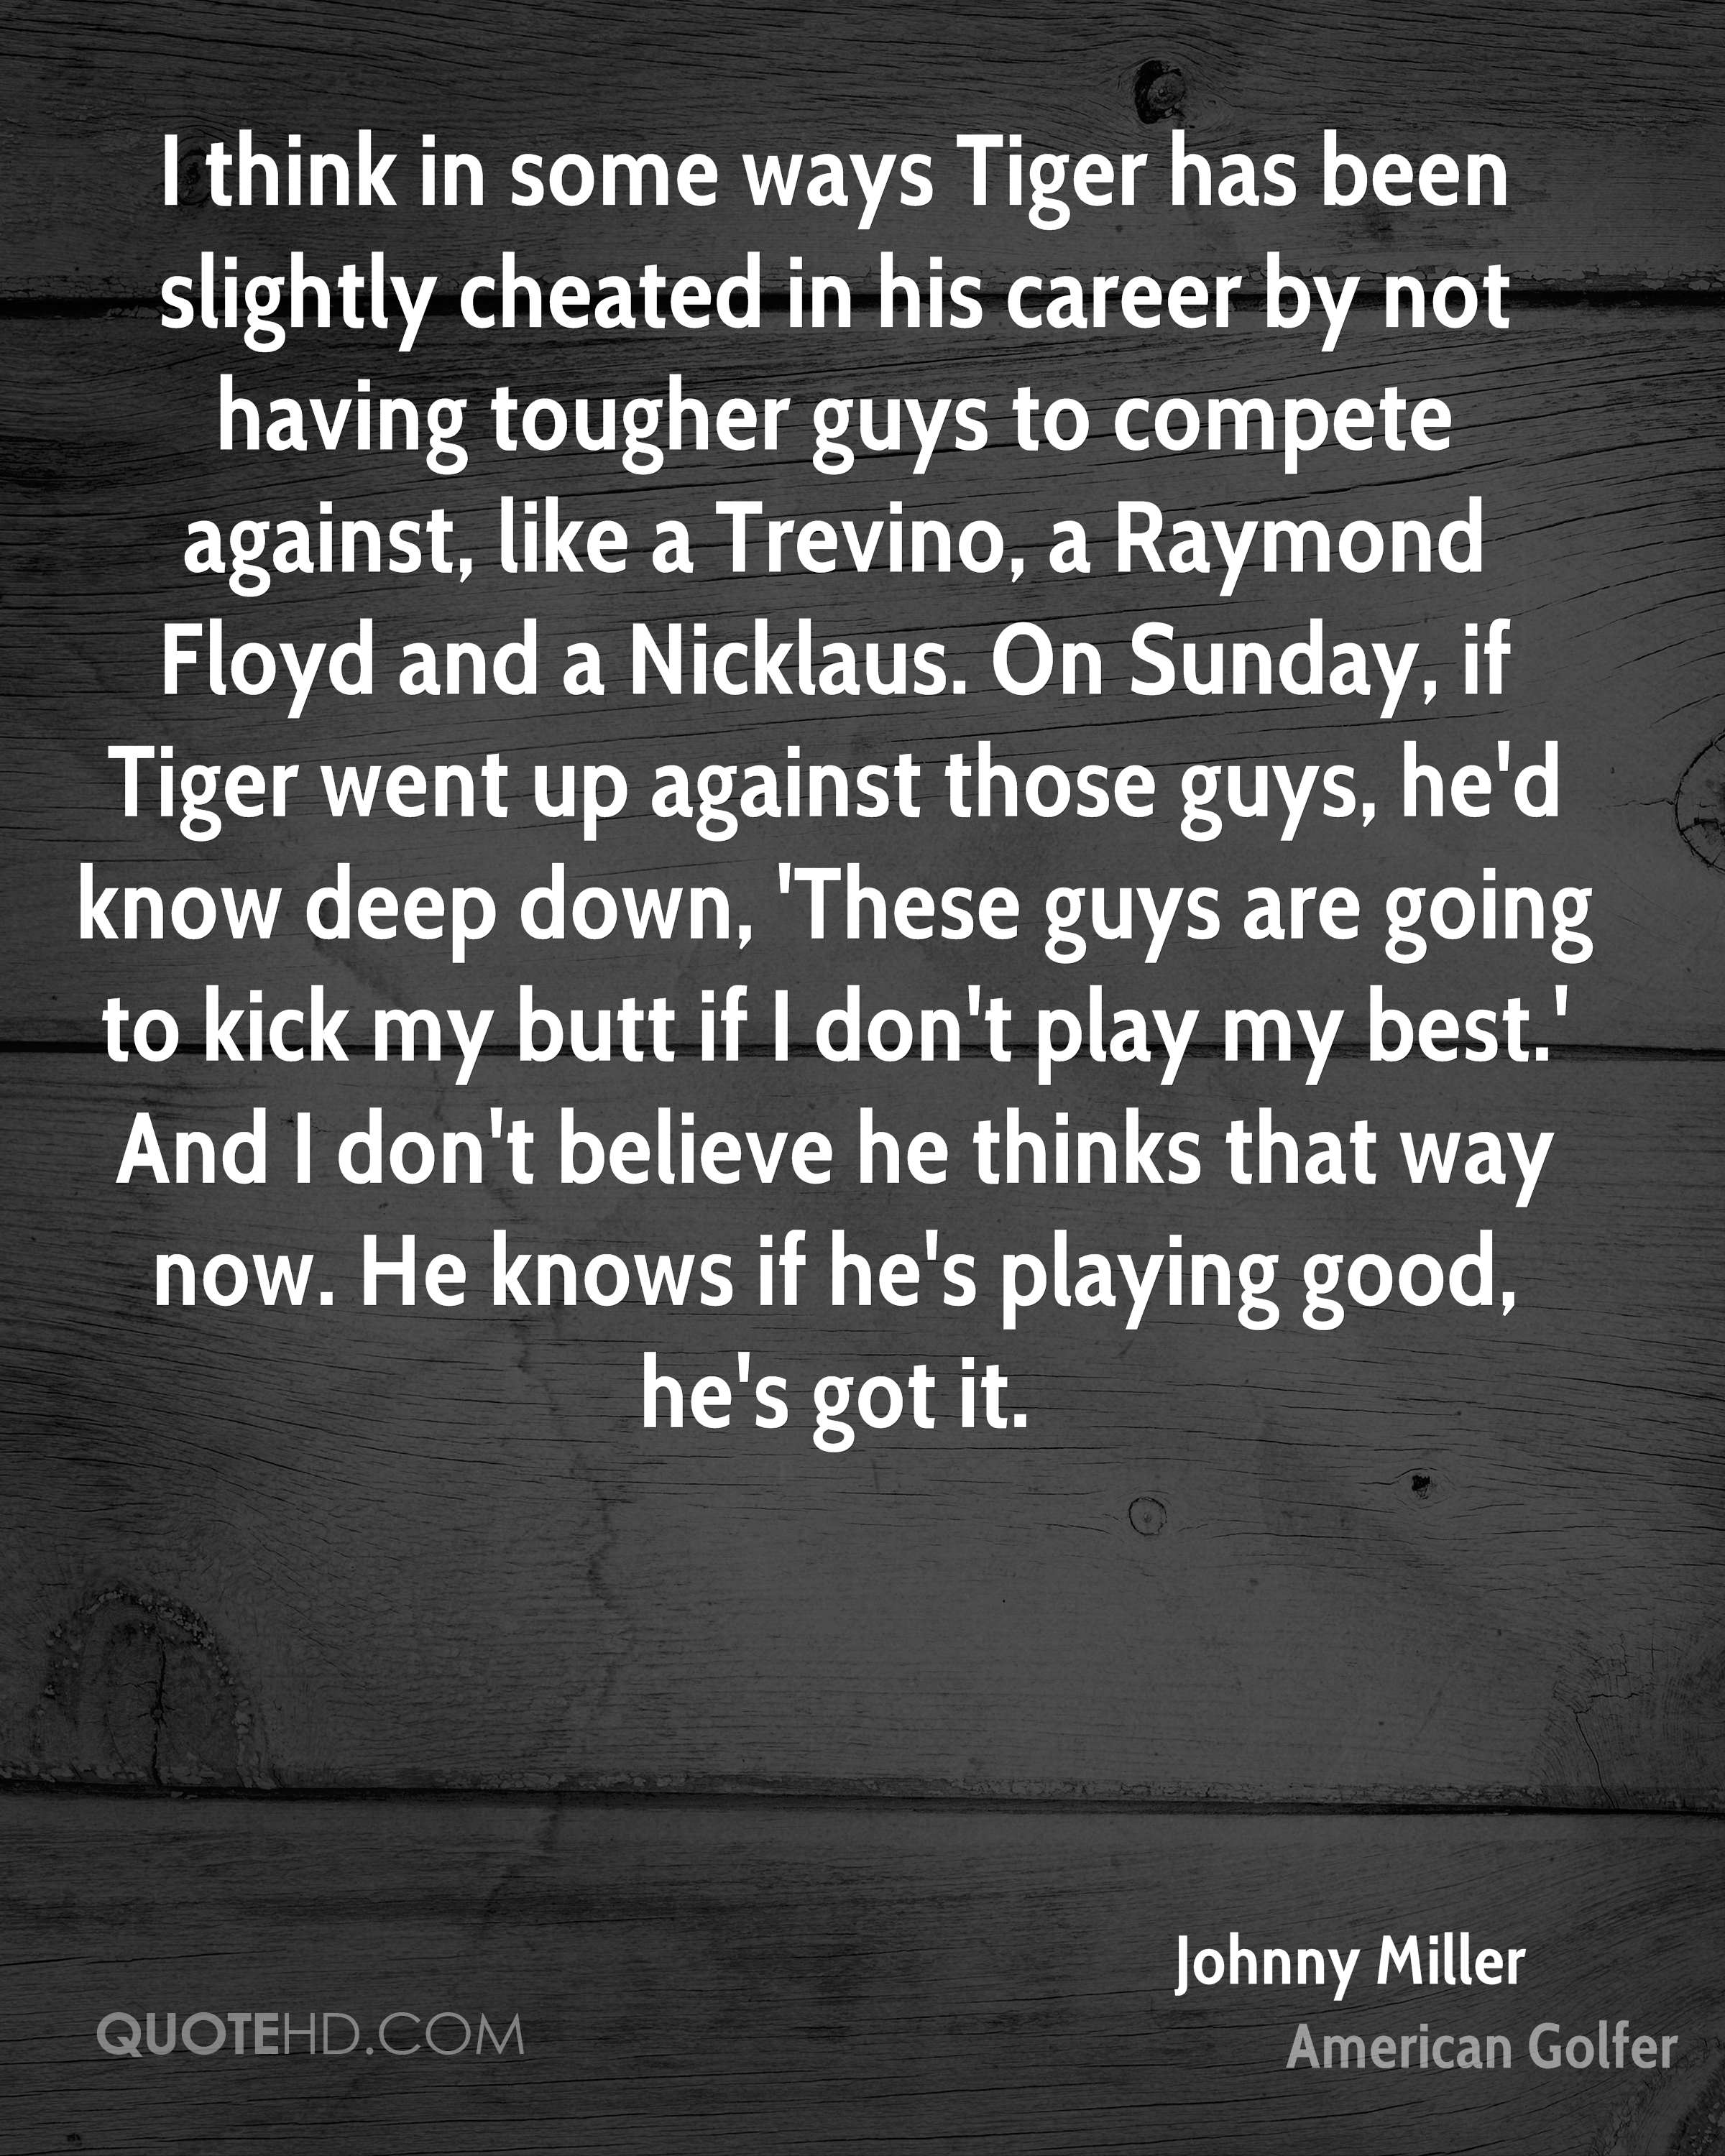 I think in some ways Tiger has been slightly cheated in his career by not having tougher guys to compete against, like a Trevino, a Raymond Floyd and a Nicklaus. On Sunday, if Tiger went up against those guys, he'd know deep down, 'These guys are going to kick my butt if I don't play my best.' And I don't believe he thinks that way now. He knows if he's playing good, he's got it.